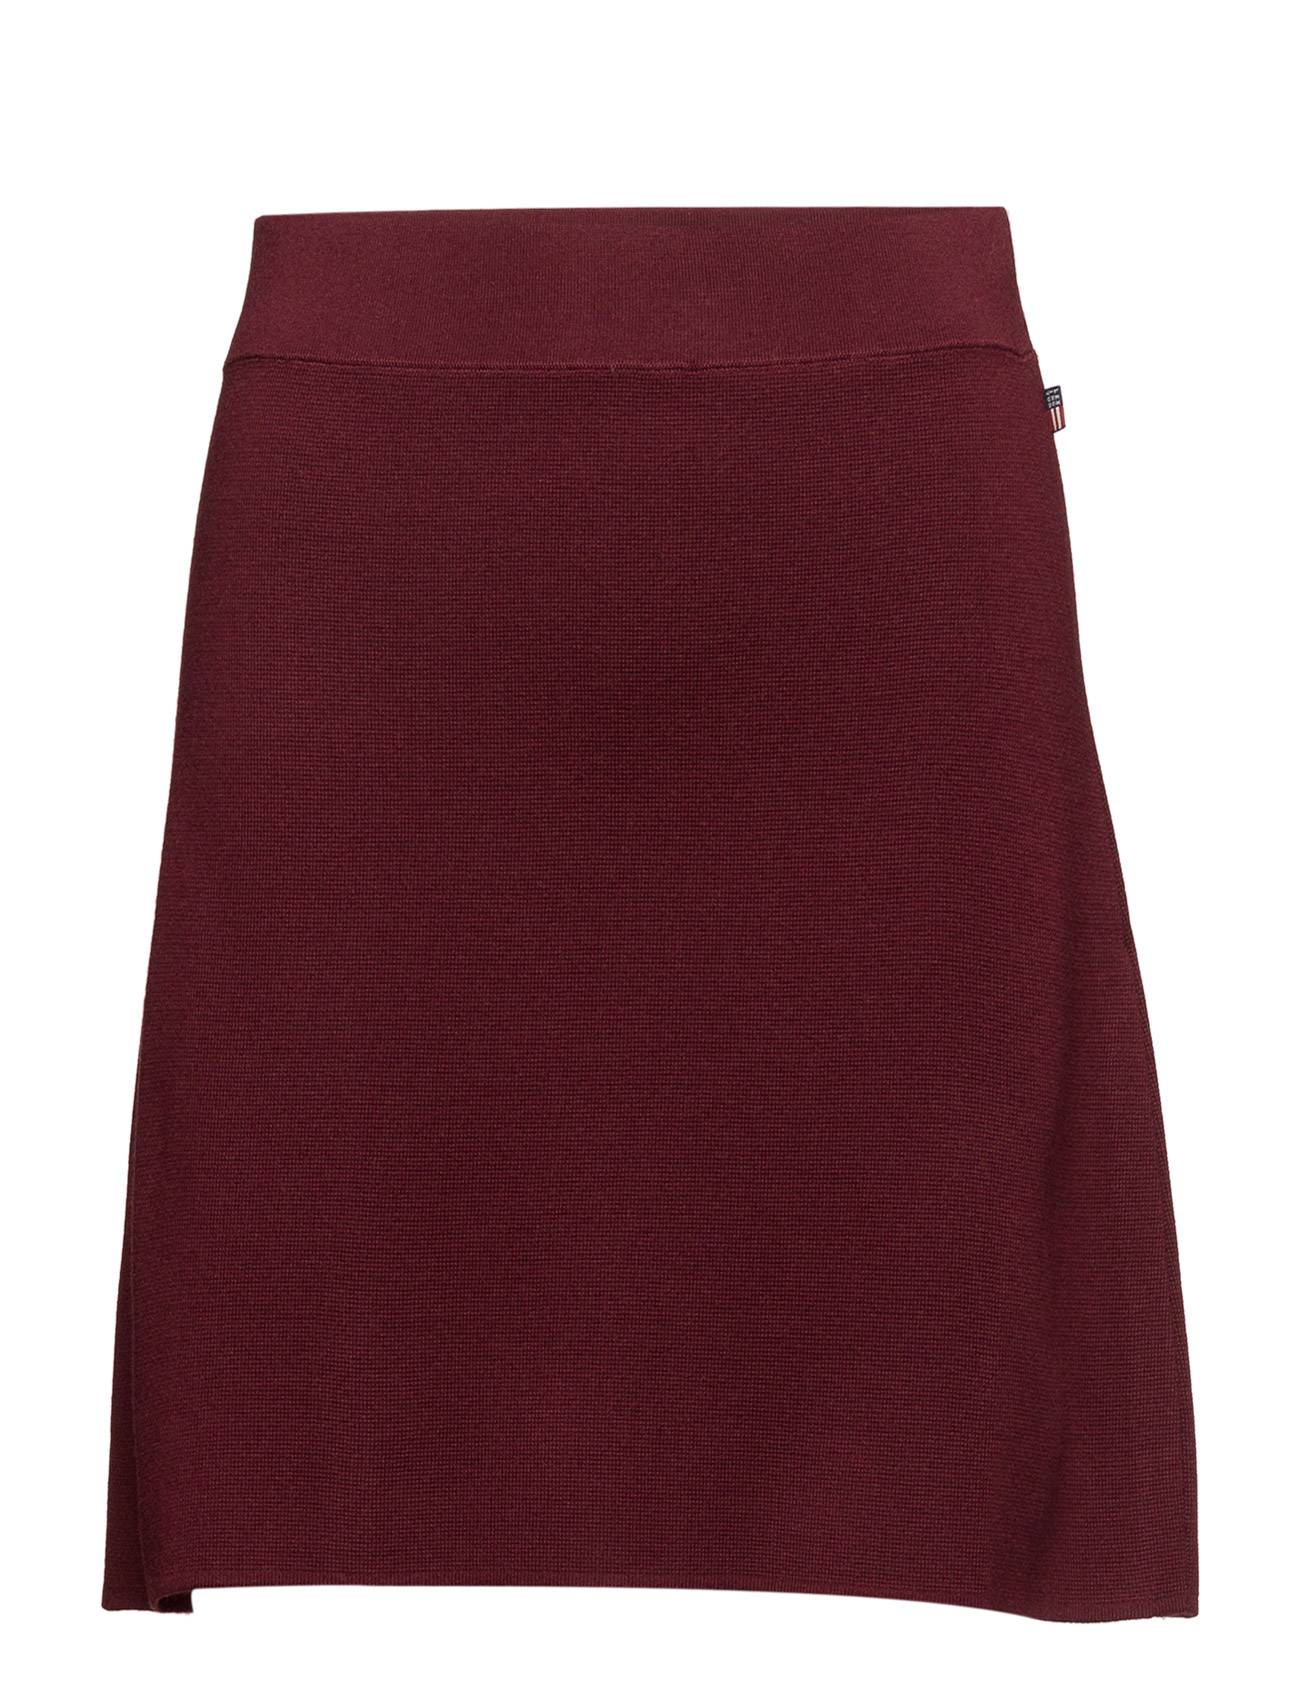 Lexington Company Chastity Knit Skirt